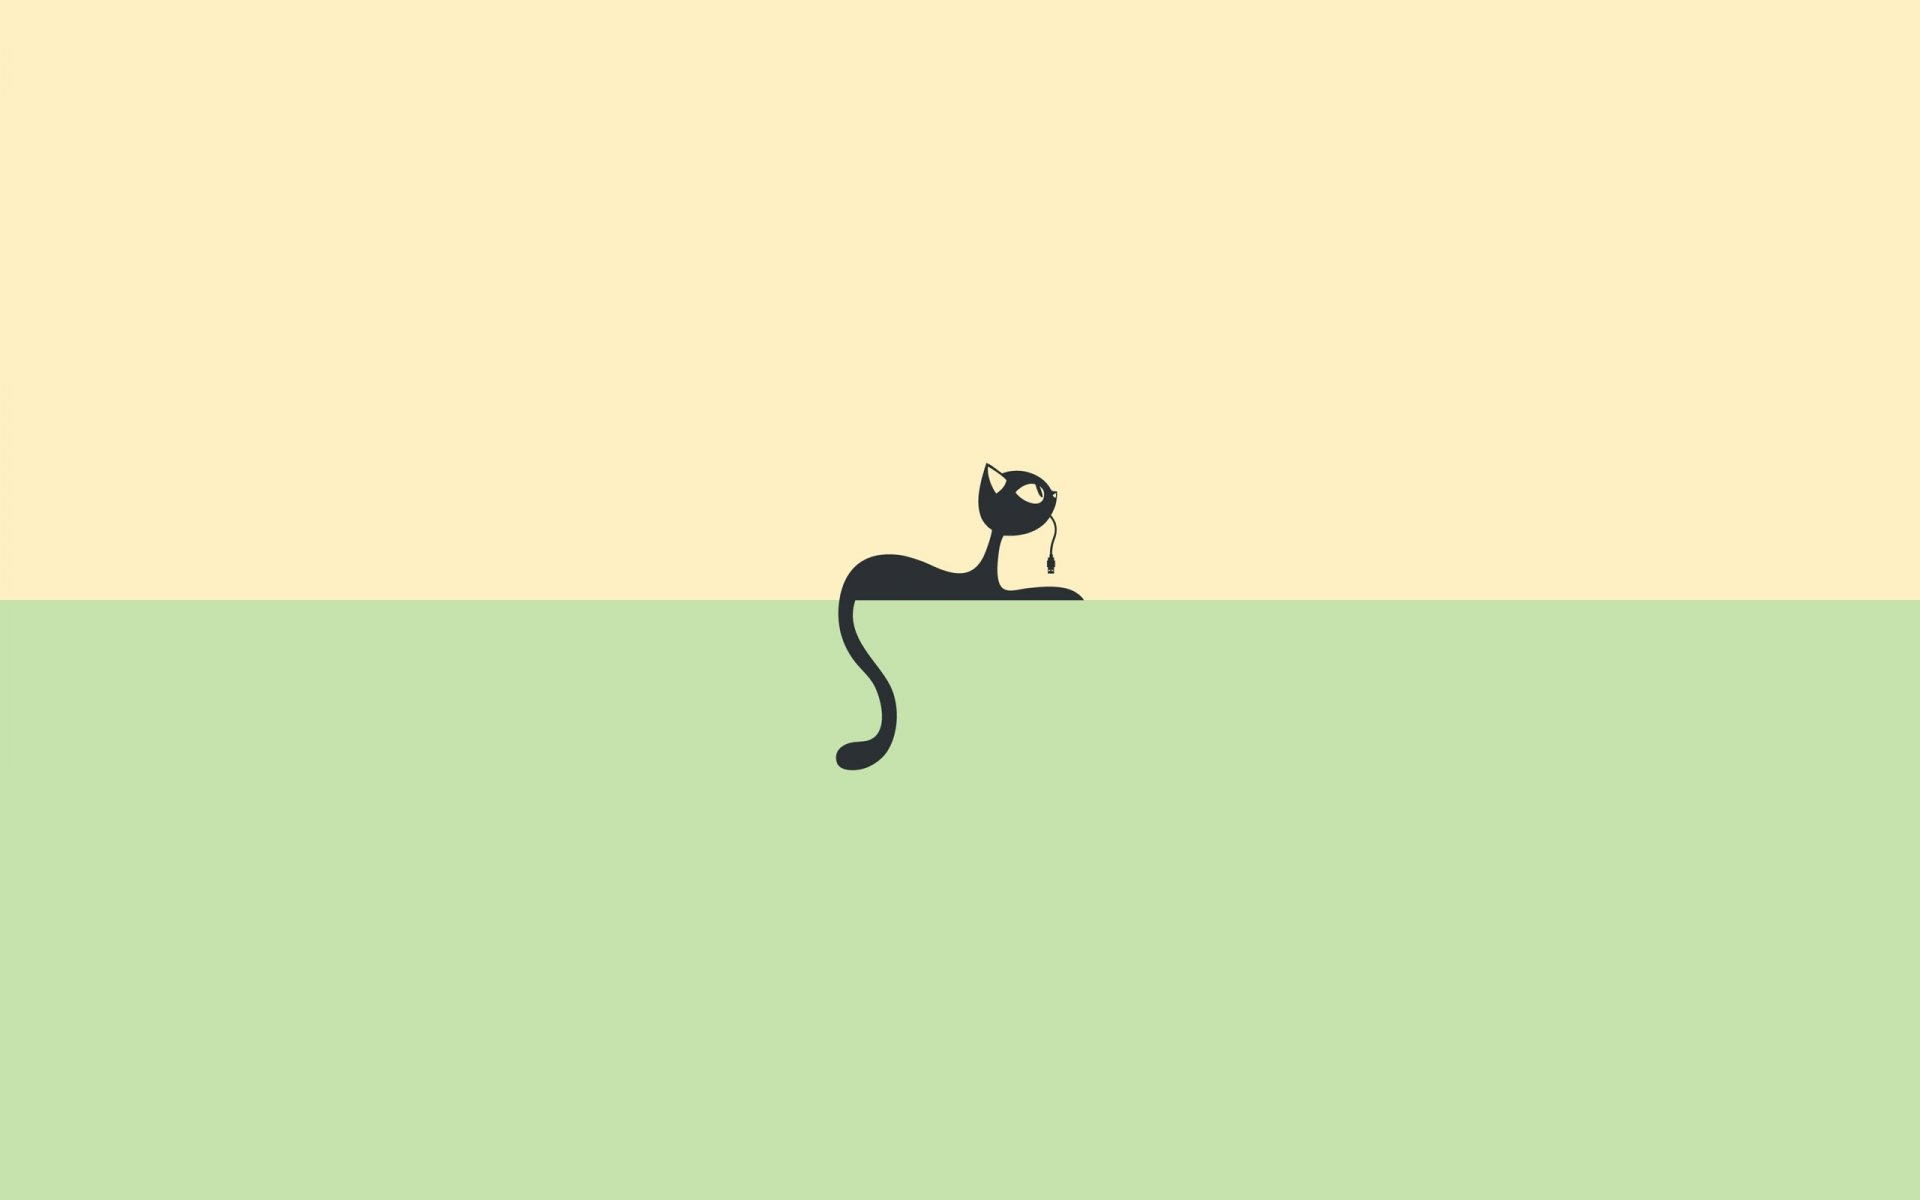 tech humor cats animals cute mouse sadic computer wallpaper background